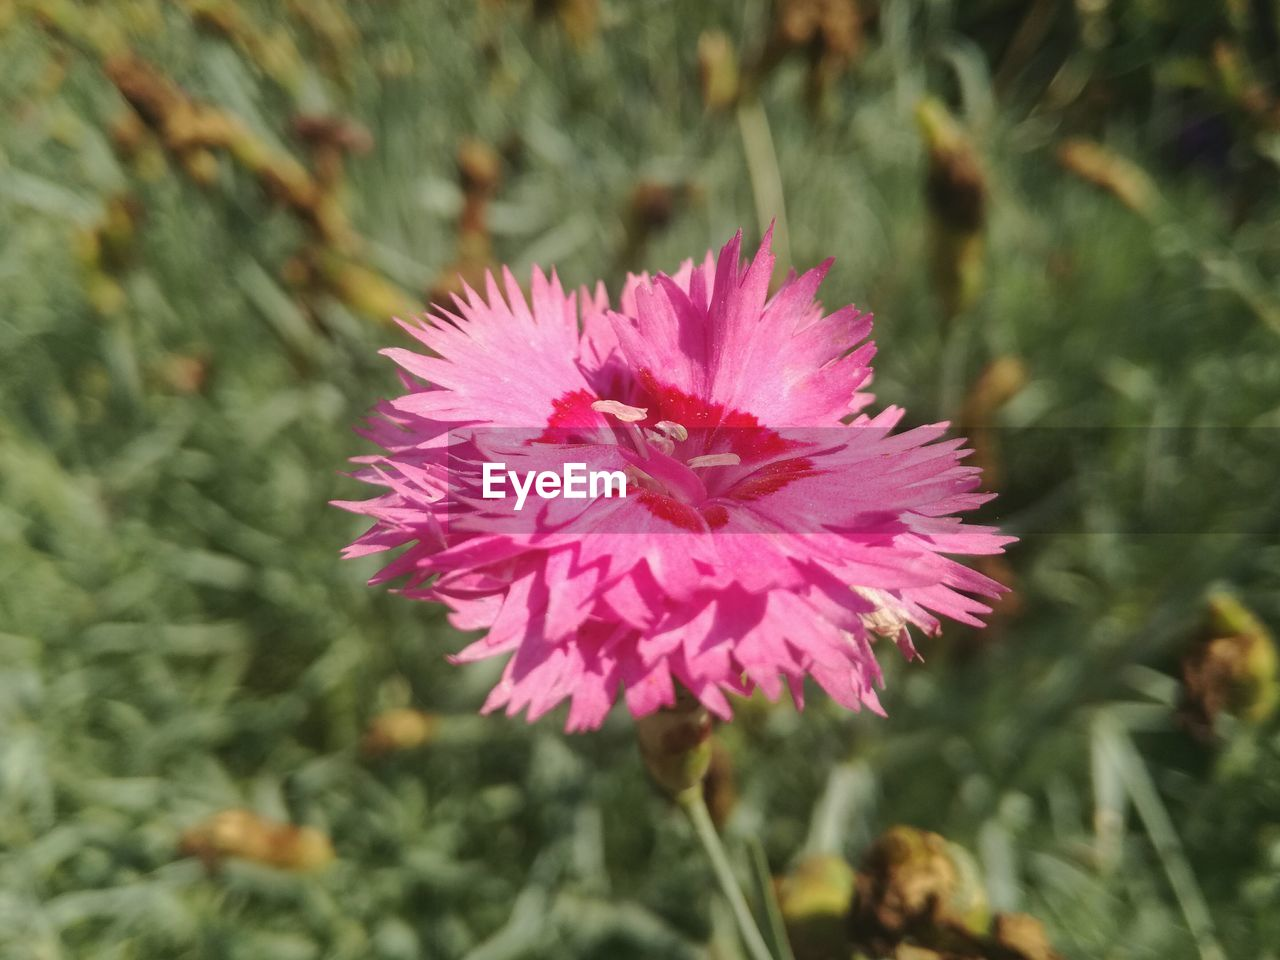 flower, growth, nature, petal, flower head, fragility, pink color, beauty in nature, plant, close-up, focus on foreground, day, no people, freshness, outdoors, blooming